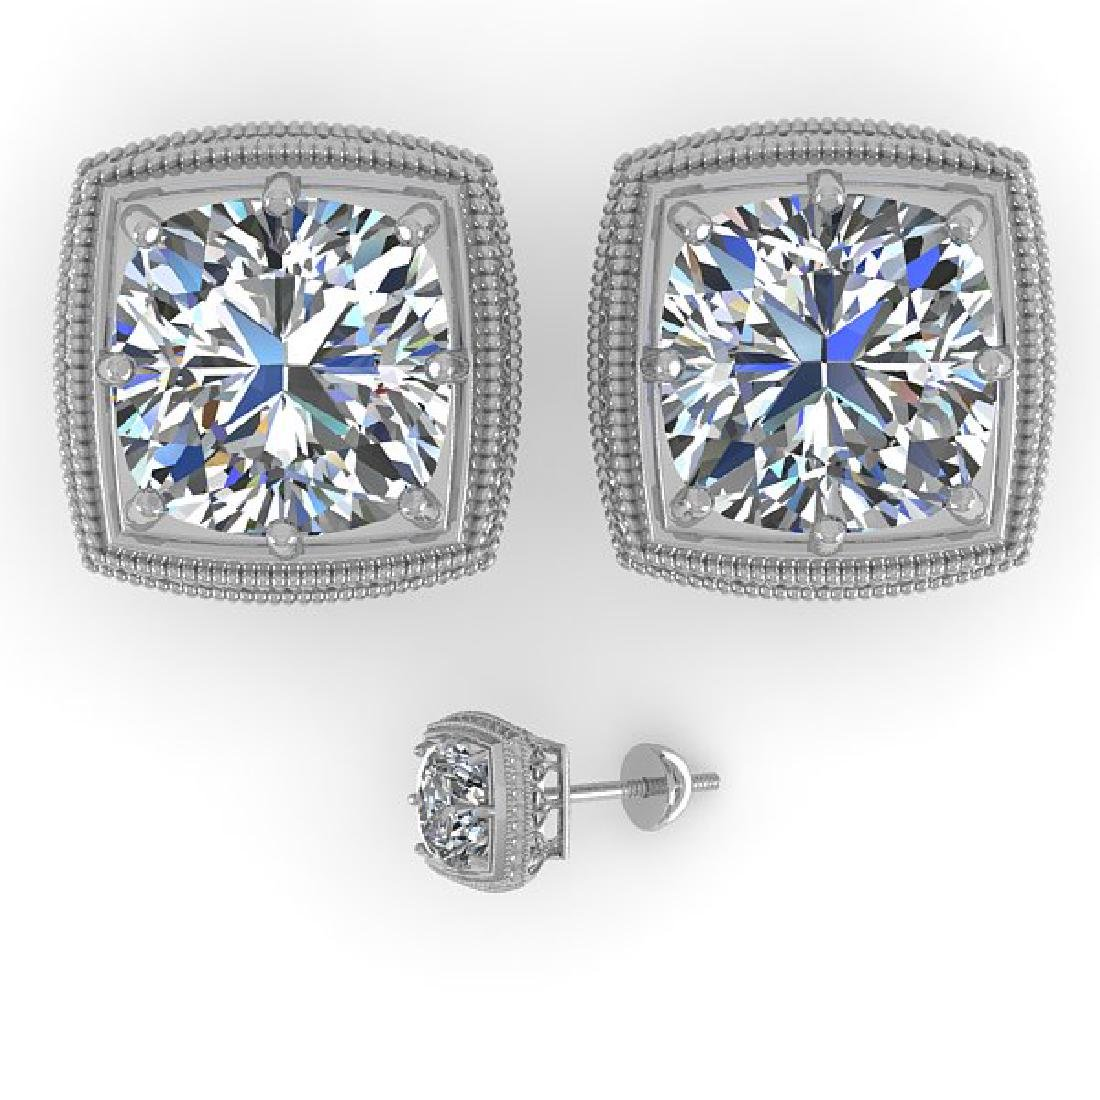 2 CTW VS/SI Cushion Cut Diamond Stud Earrings Deco 18K - 2